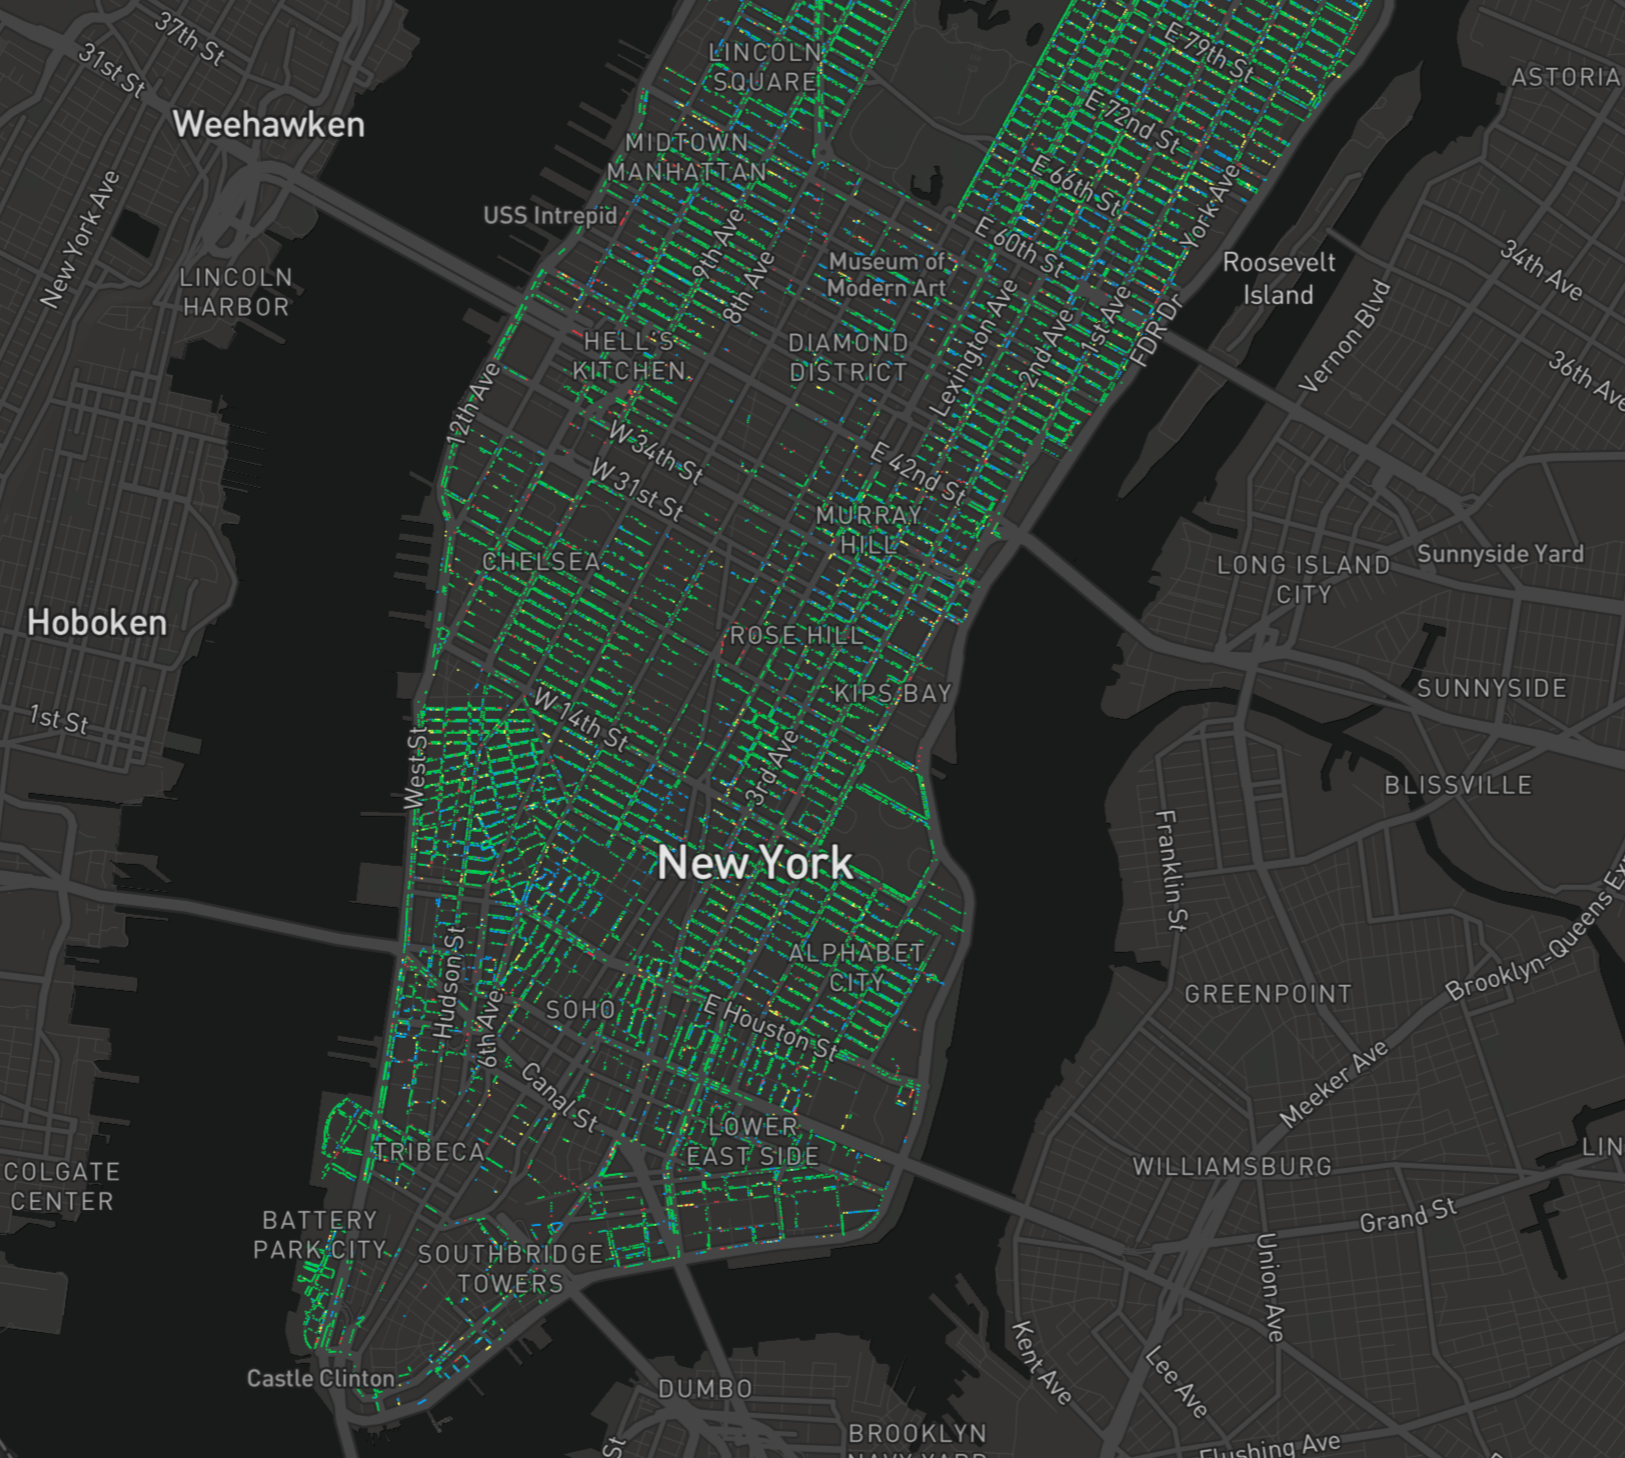 My inspired viz - mapping the health of NYC trees!